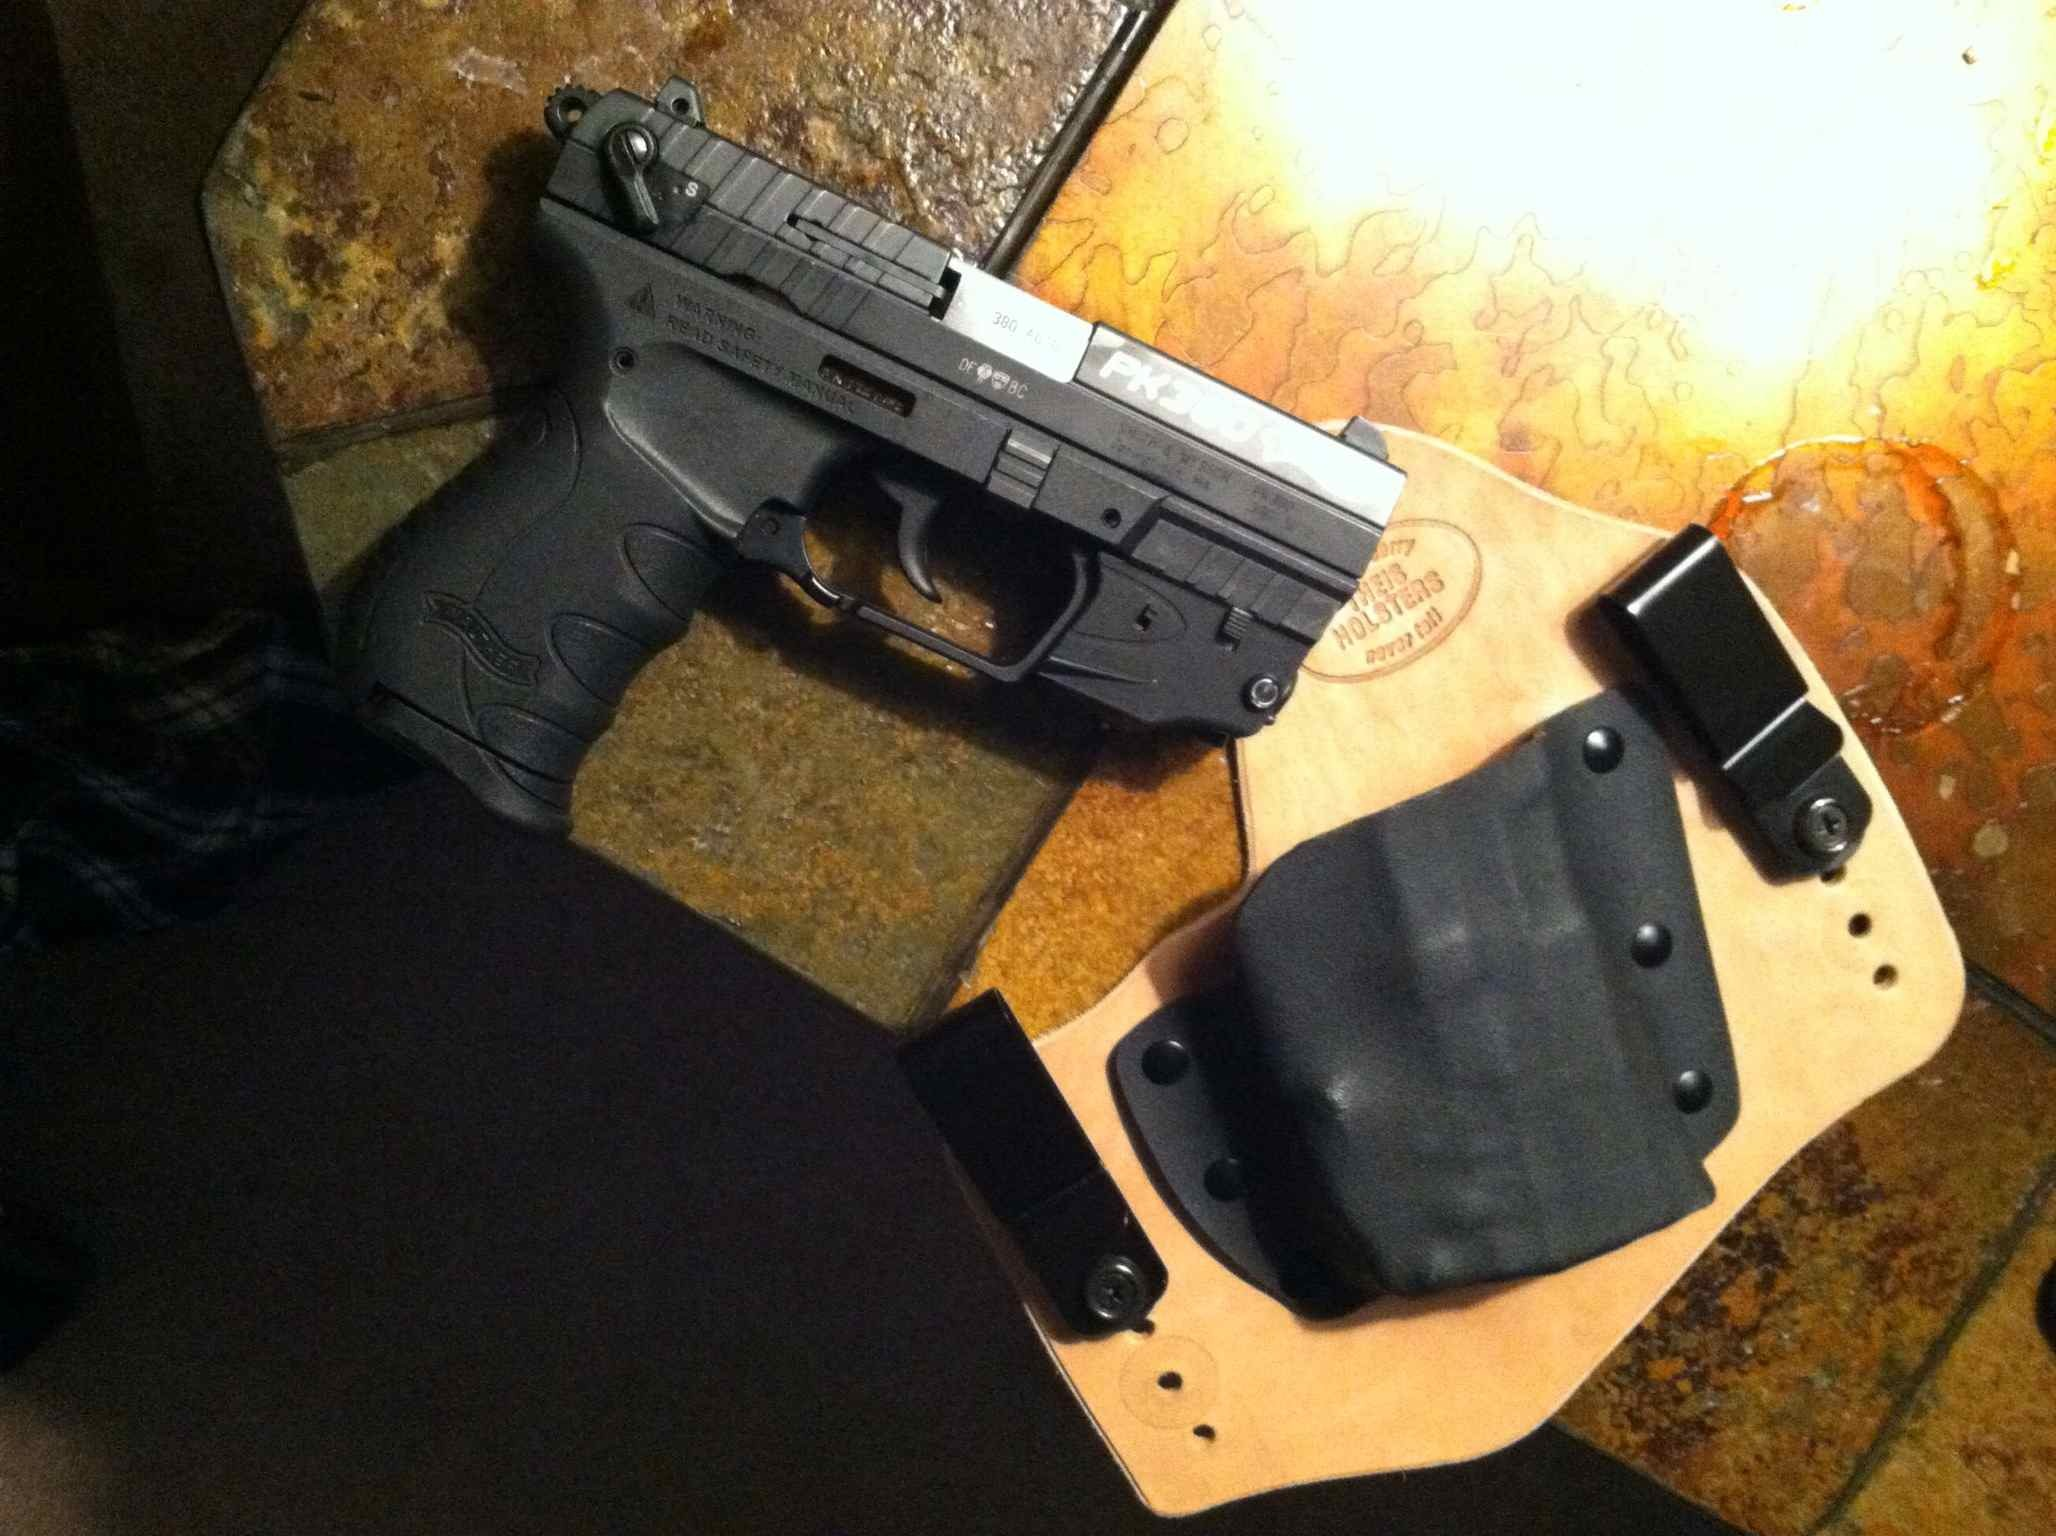 Walther PK380 Holster with laser-imageuploadedbytapatalk-hd1359427984.955780.jpg